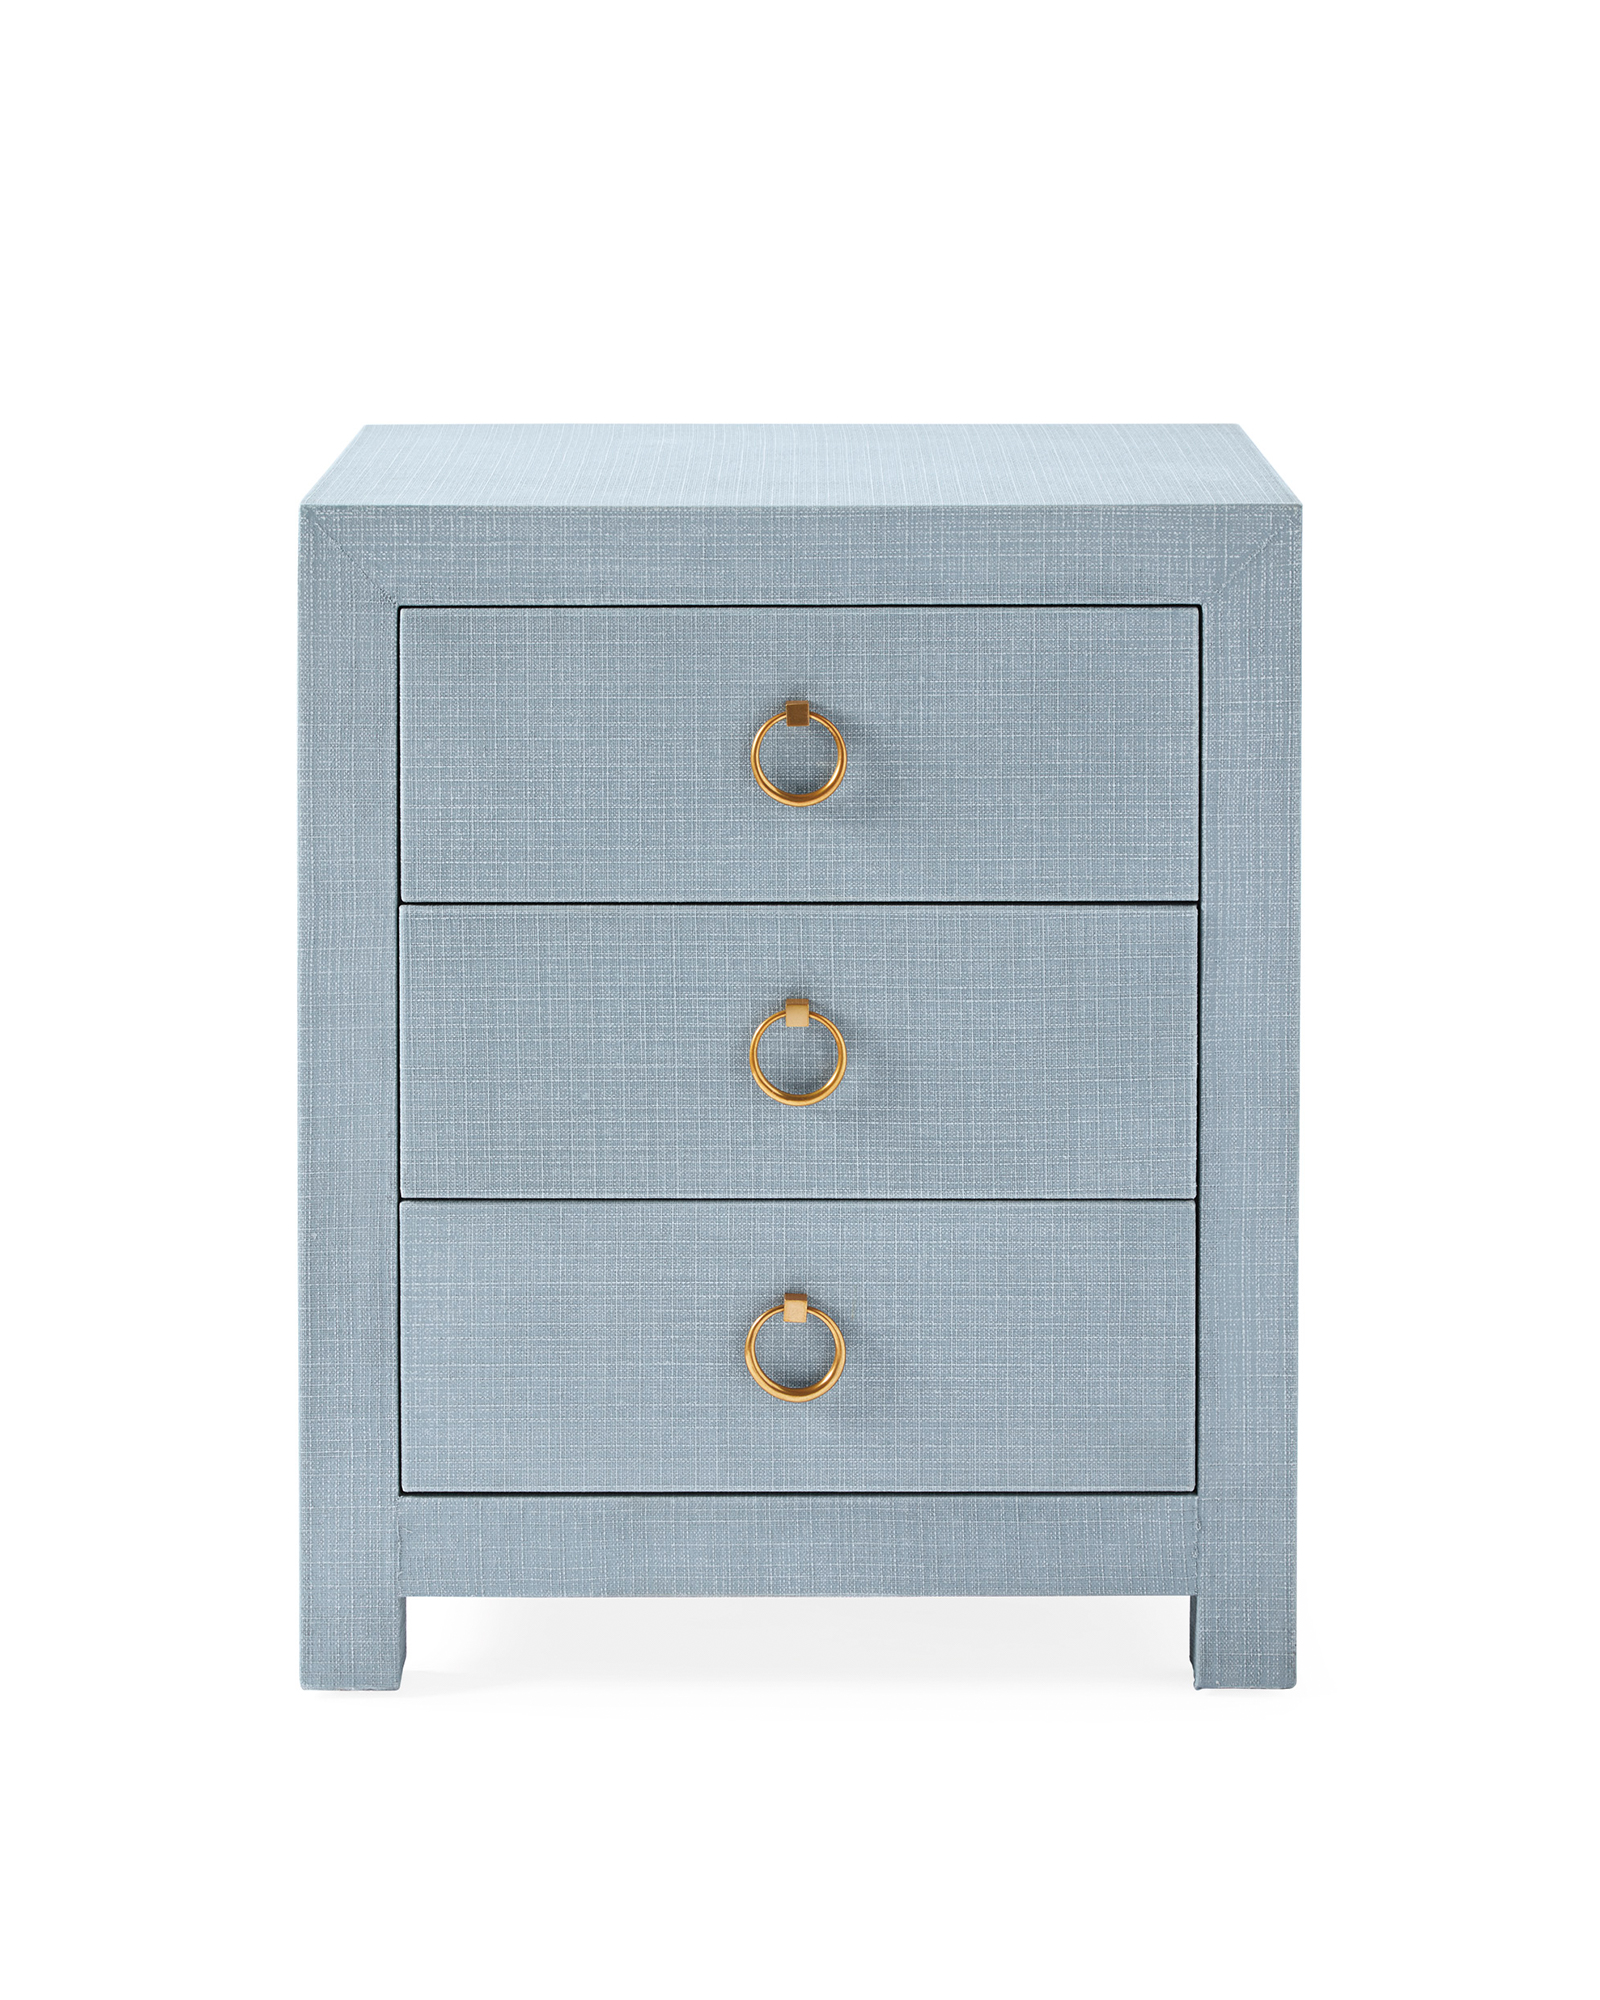 Driftway 3-Drawer Nightstand, Coastal Blue